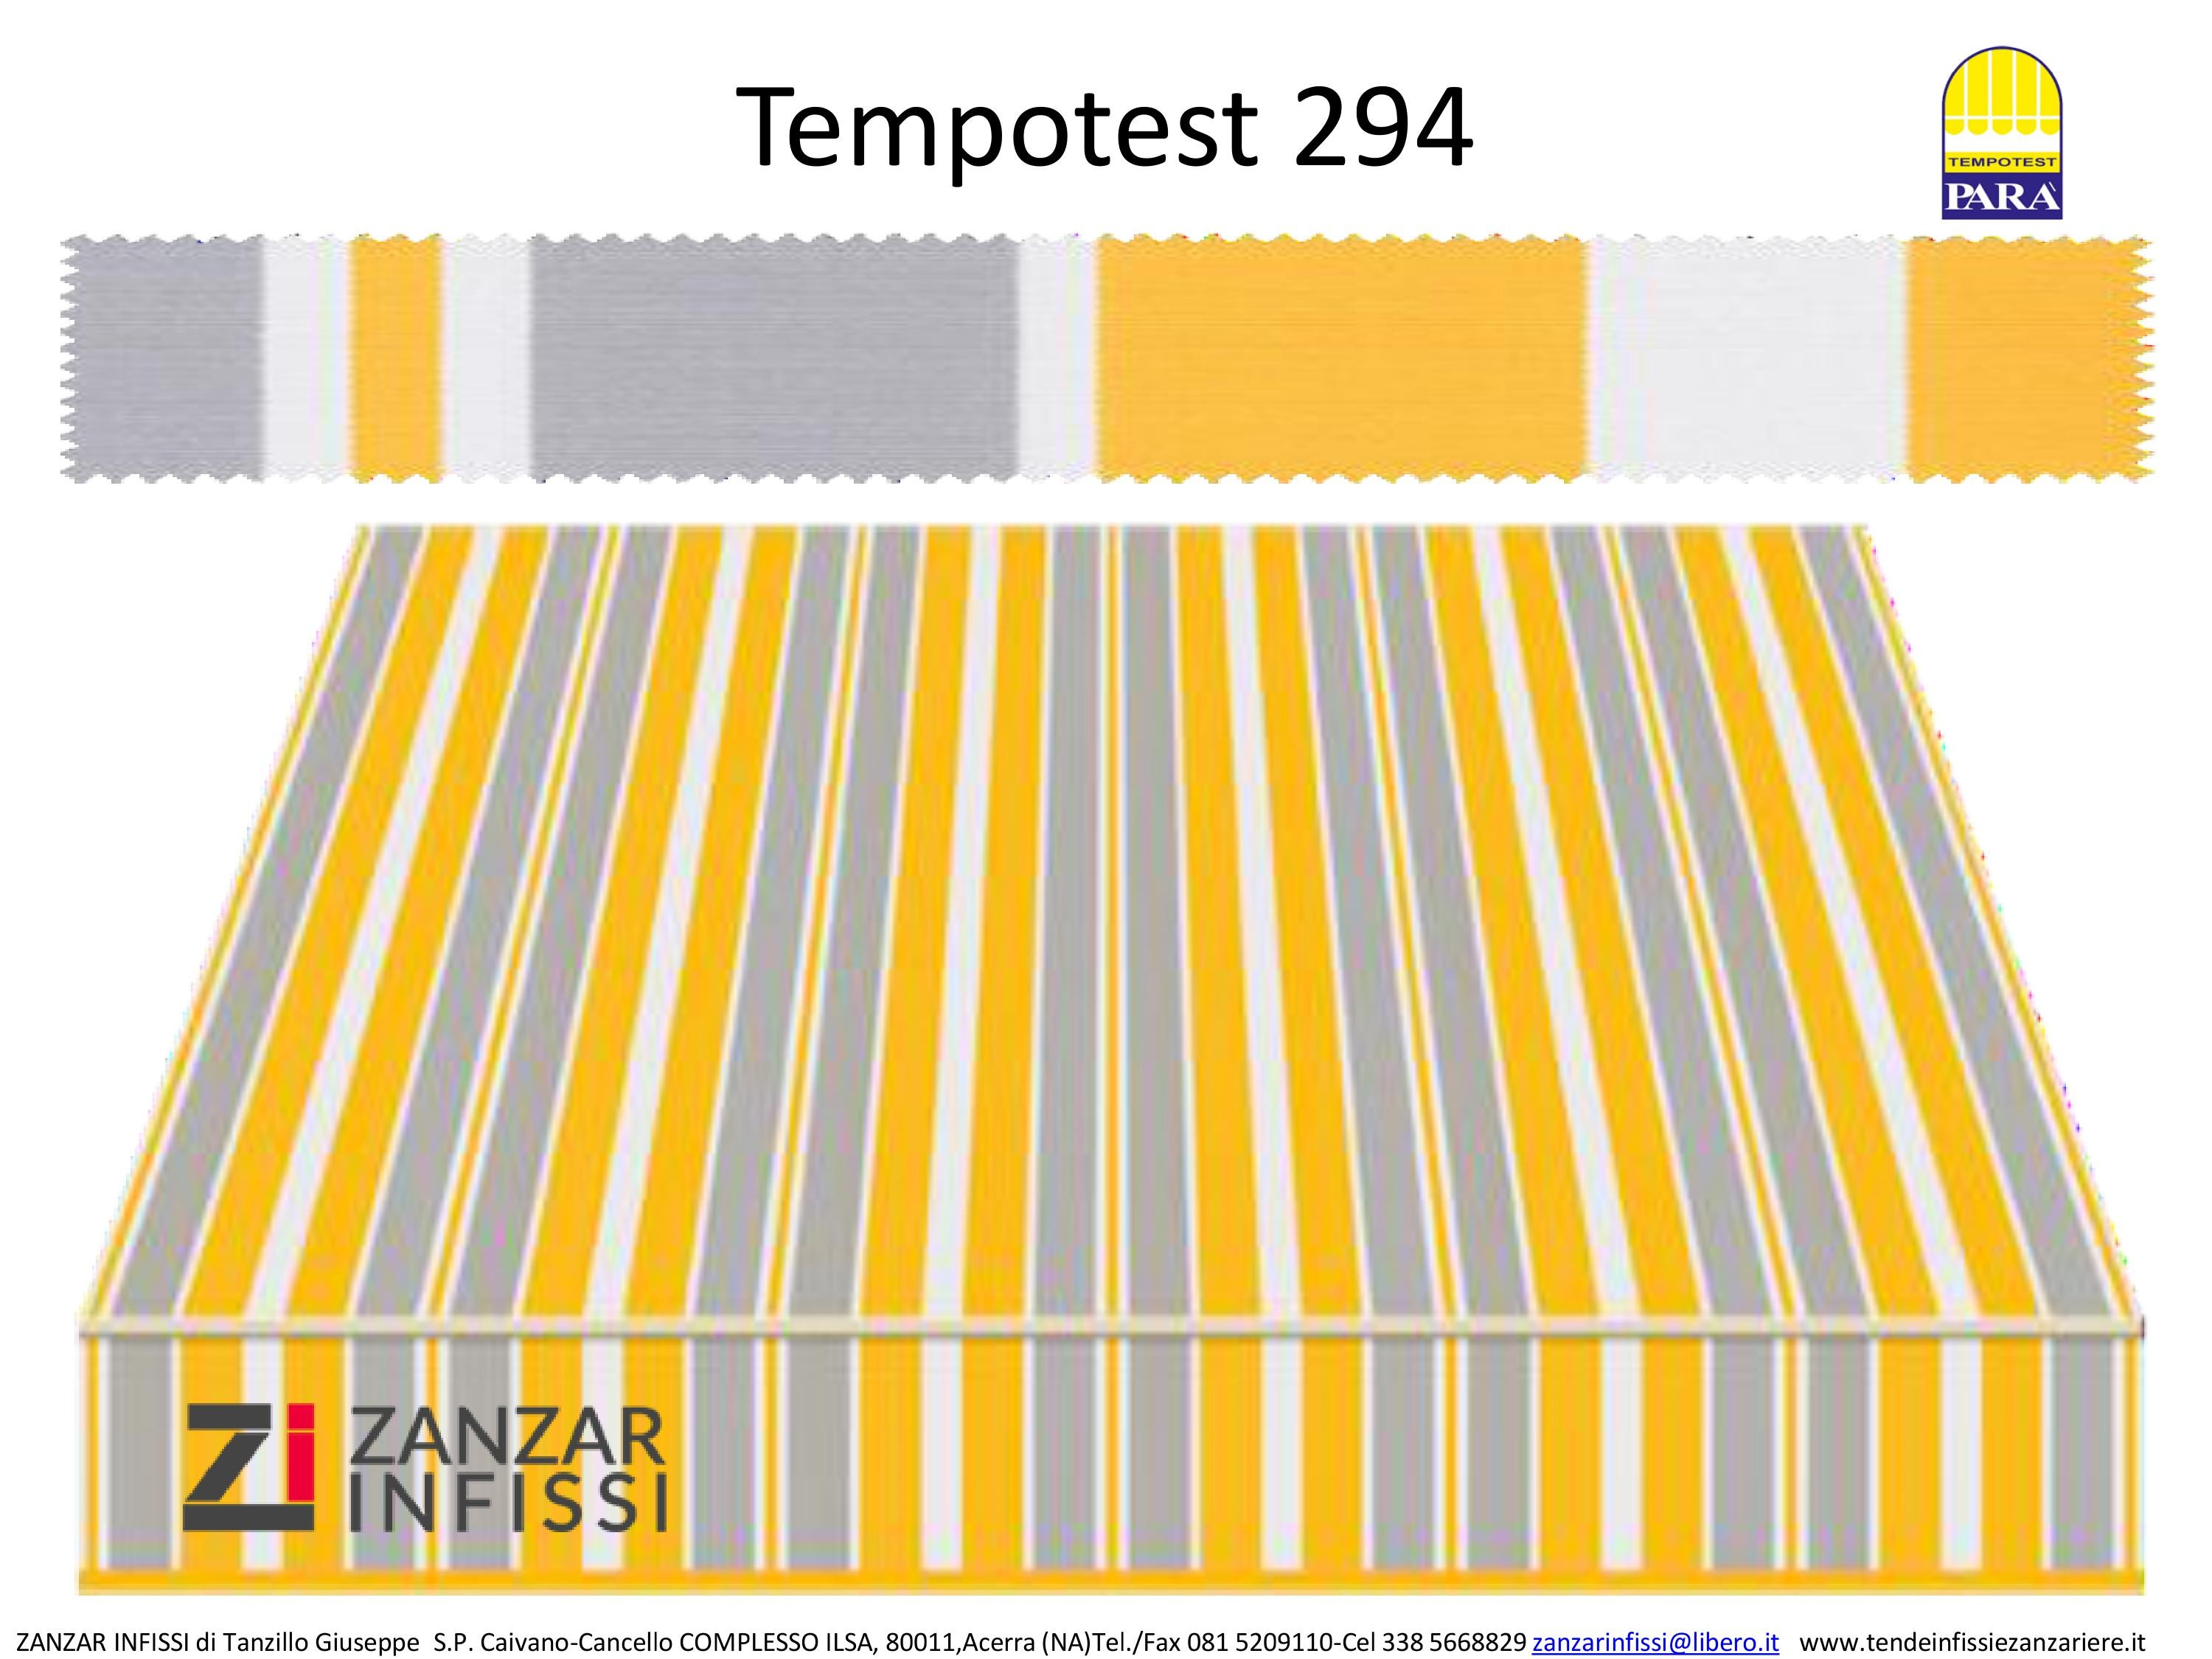 Tempotest 294